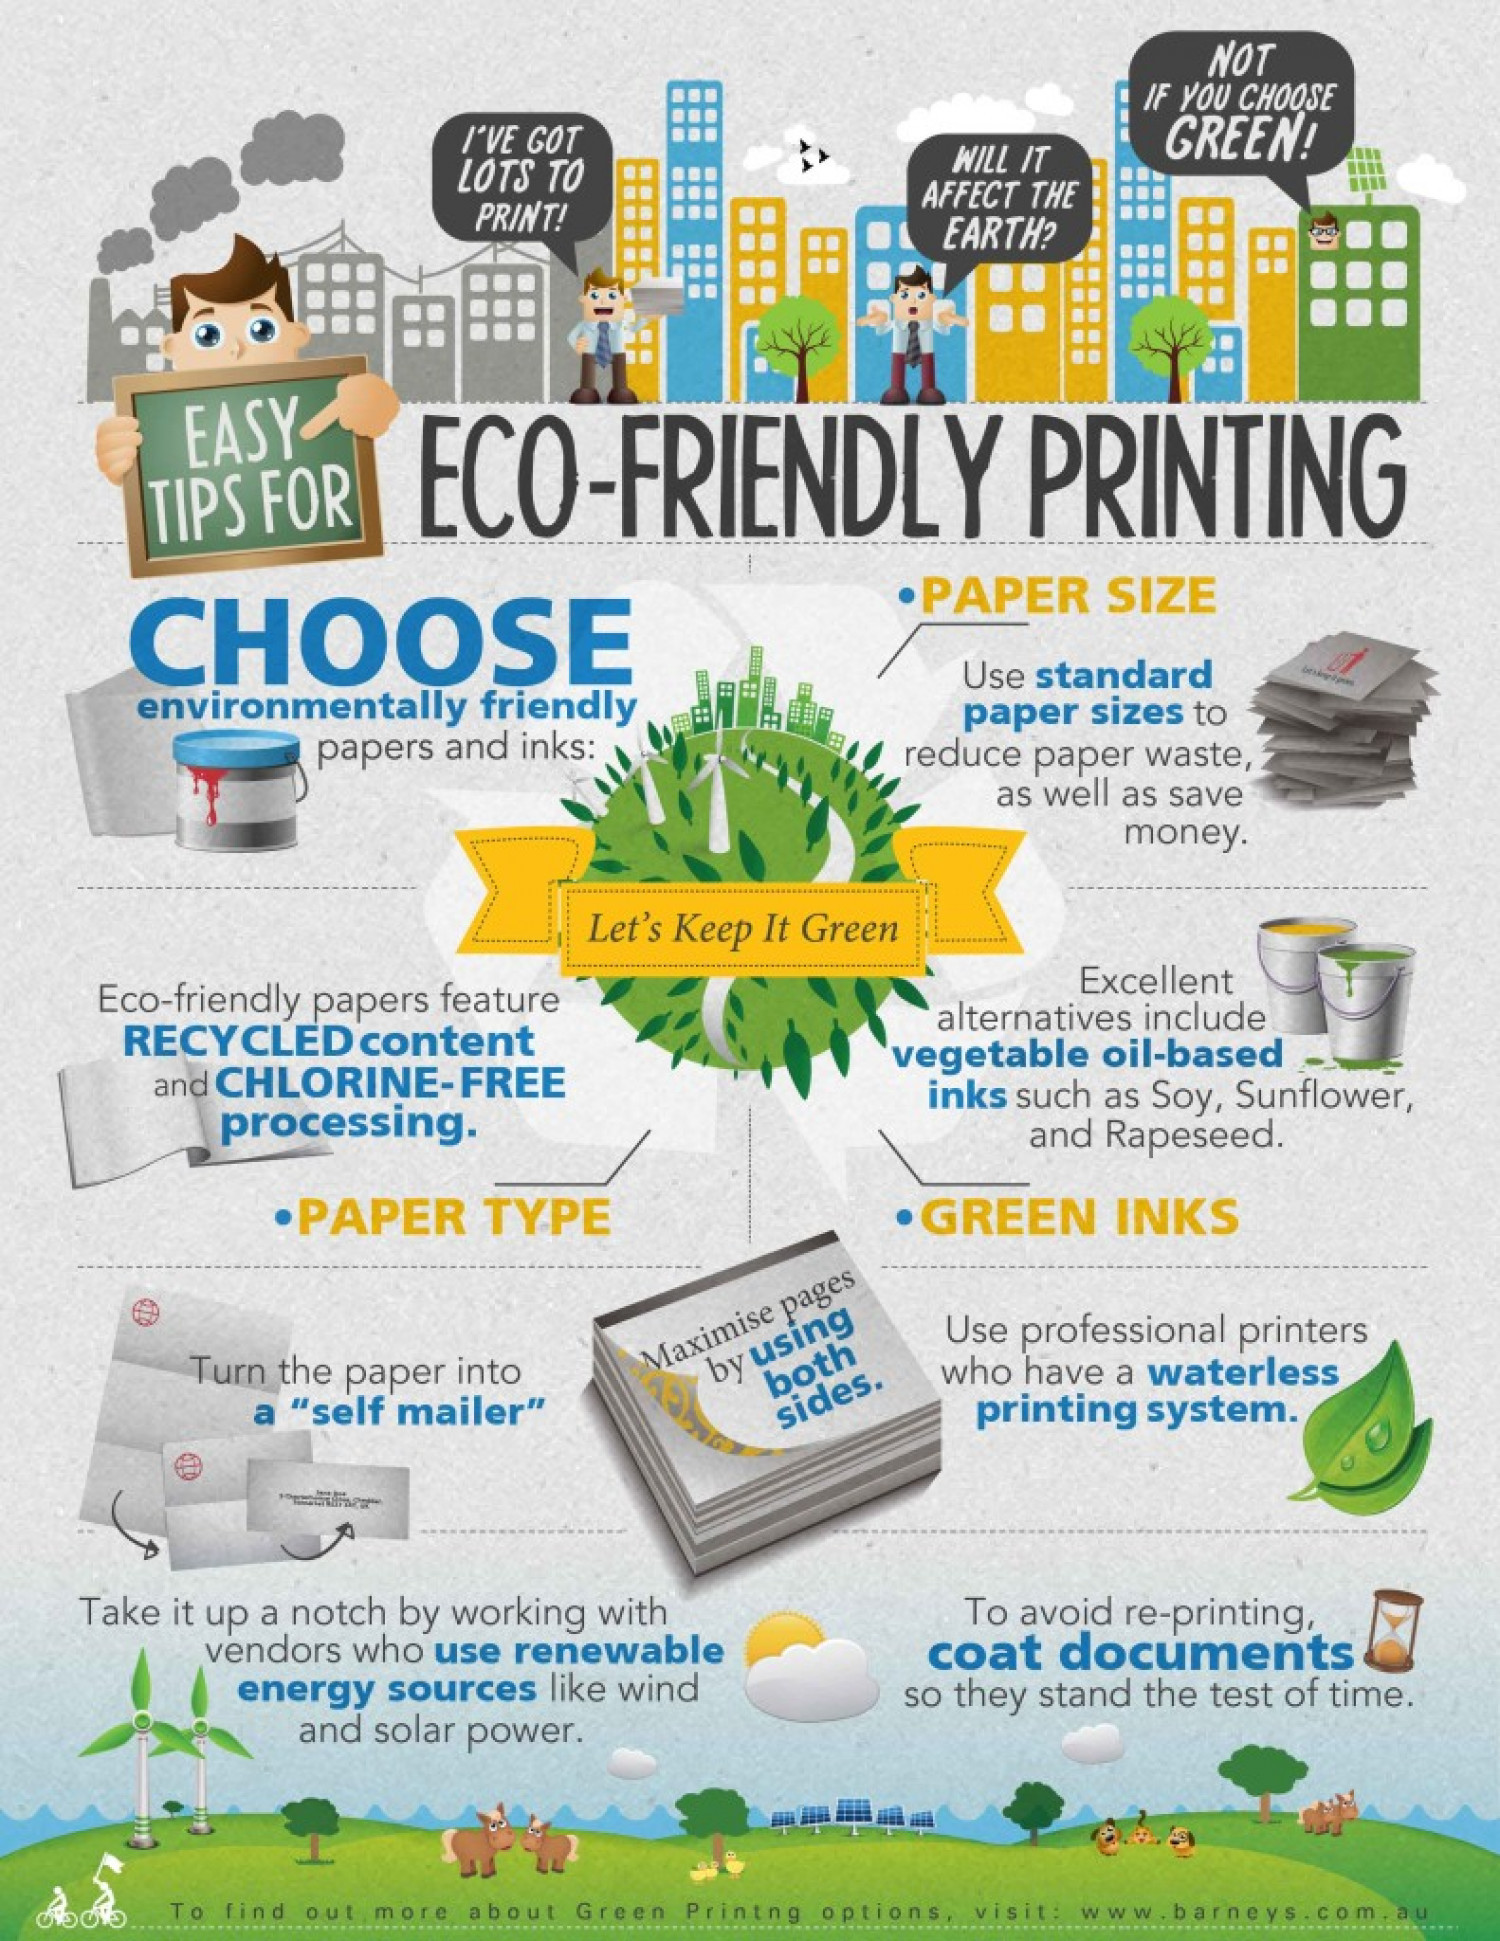 Easy Tips for Eco-Friendly Printing Infographic